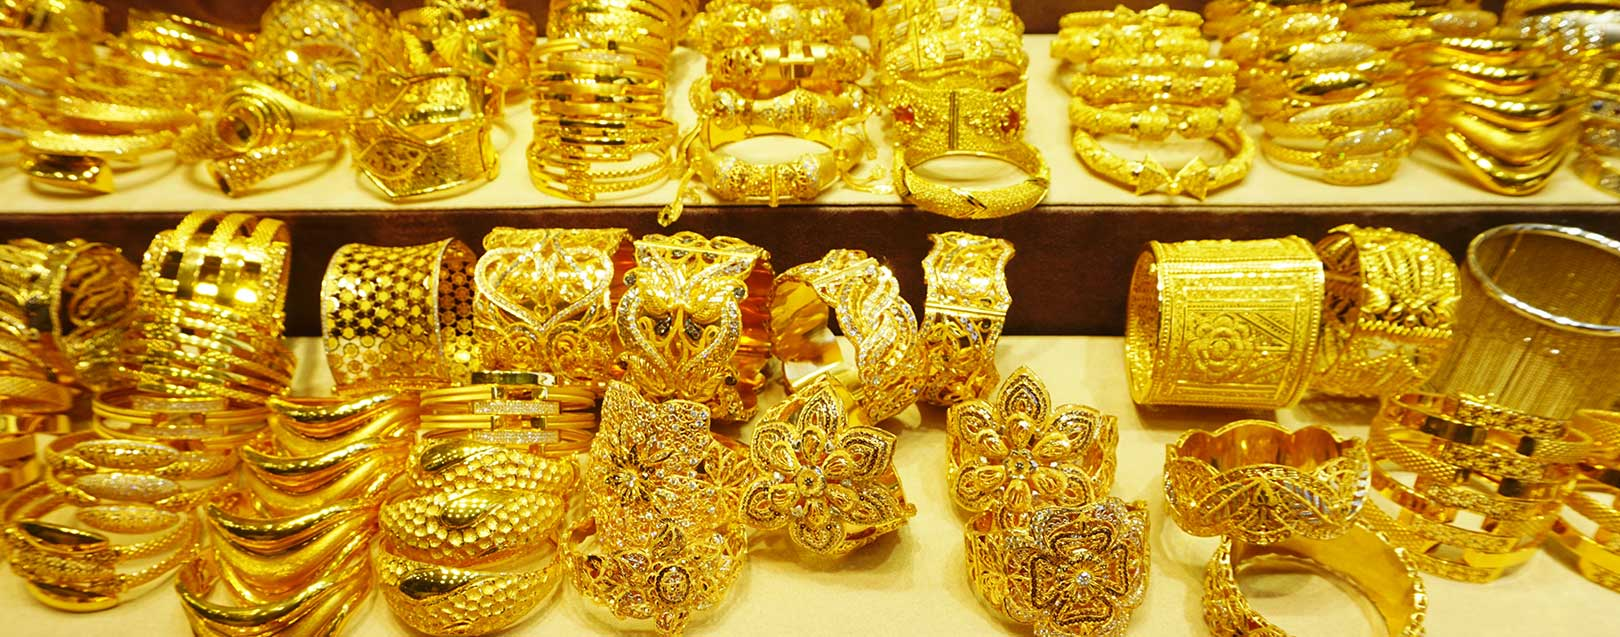 Commerce ministry urges the finance ministry to reduce import duty on gold to 2%